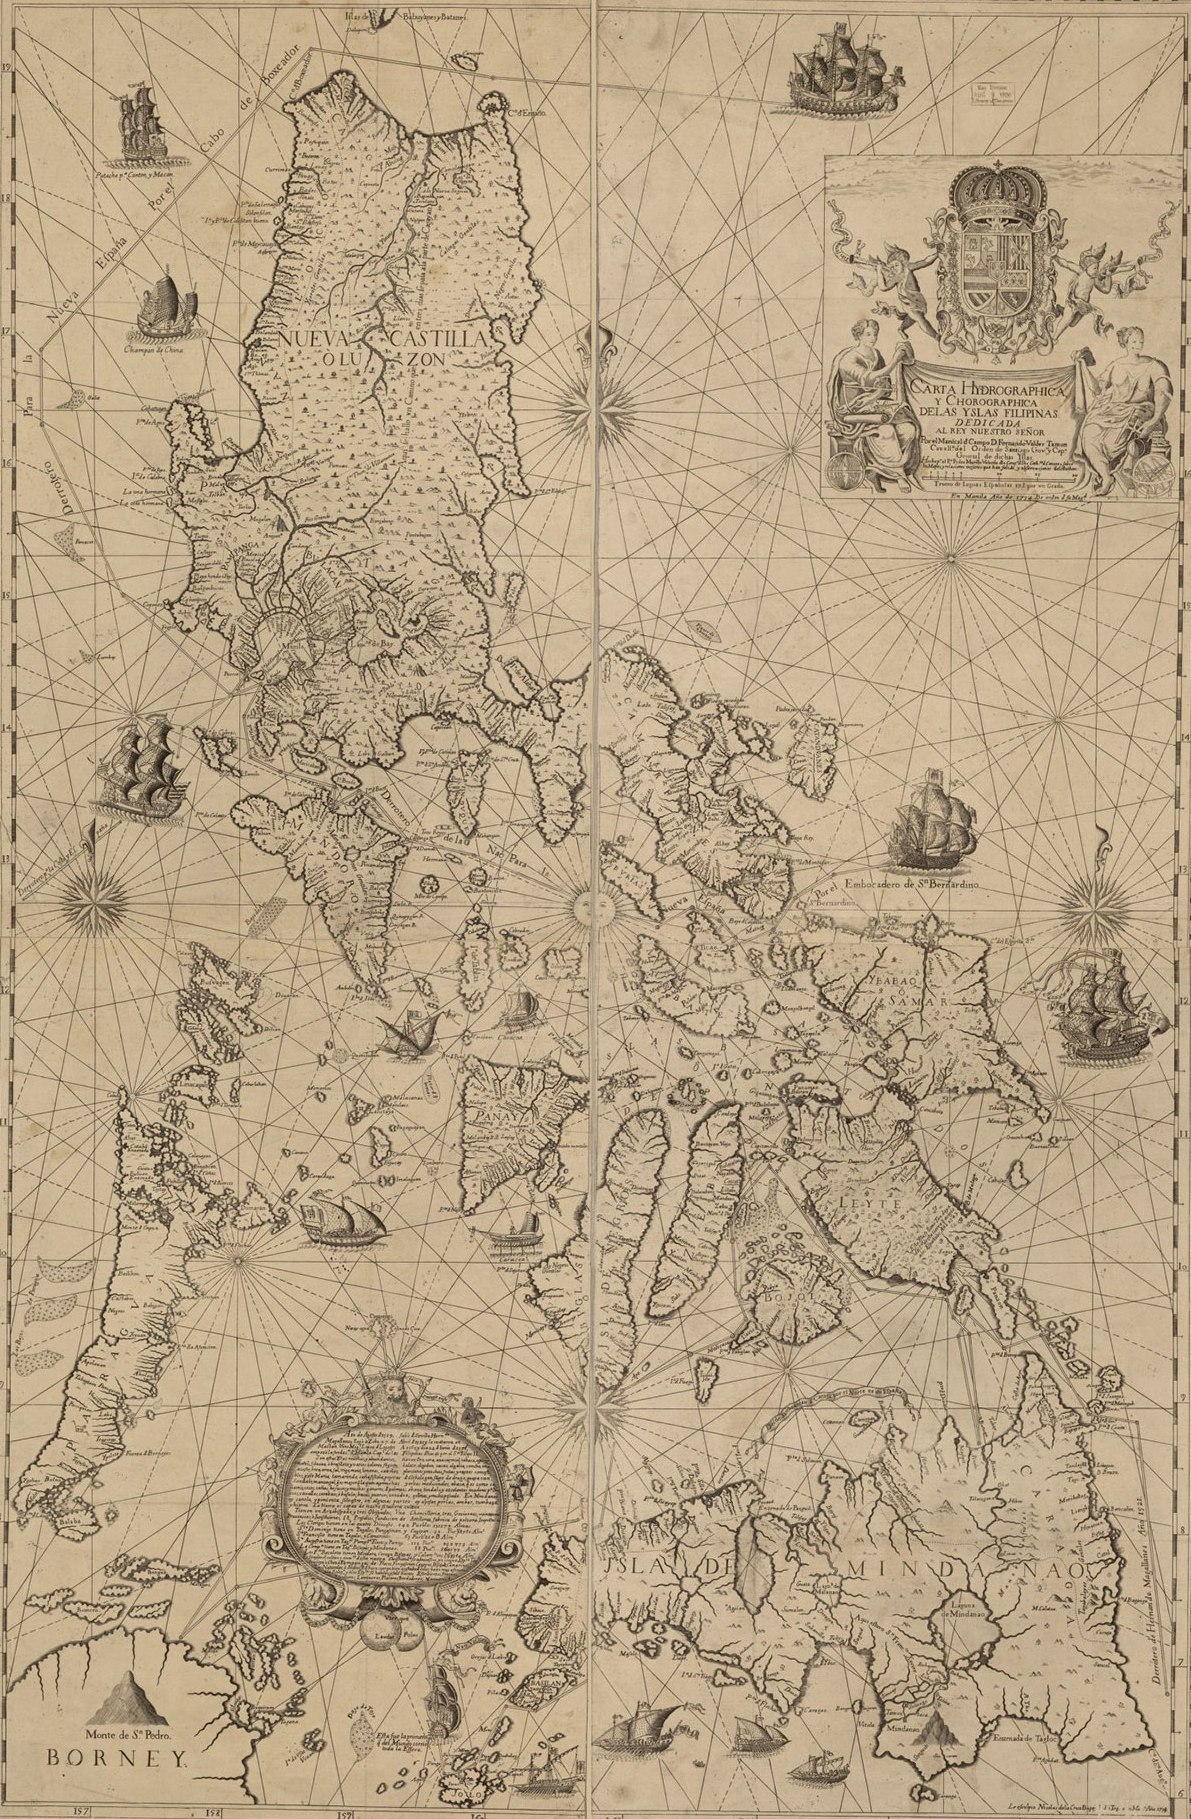 Jesuit Father, Pedro Murillo Velarde's (1696-1753), 1734 map illustrating Spanish controlled Philippines